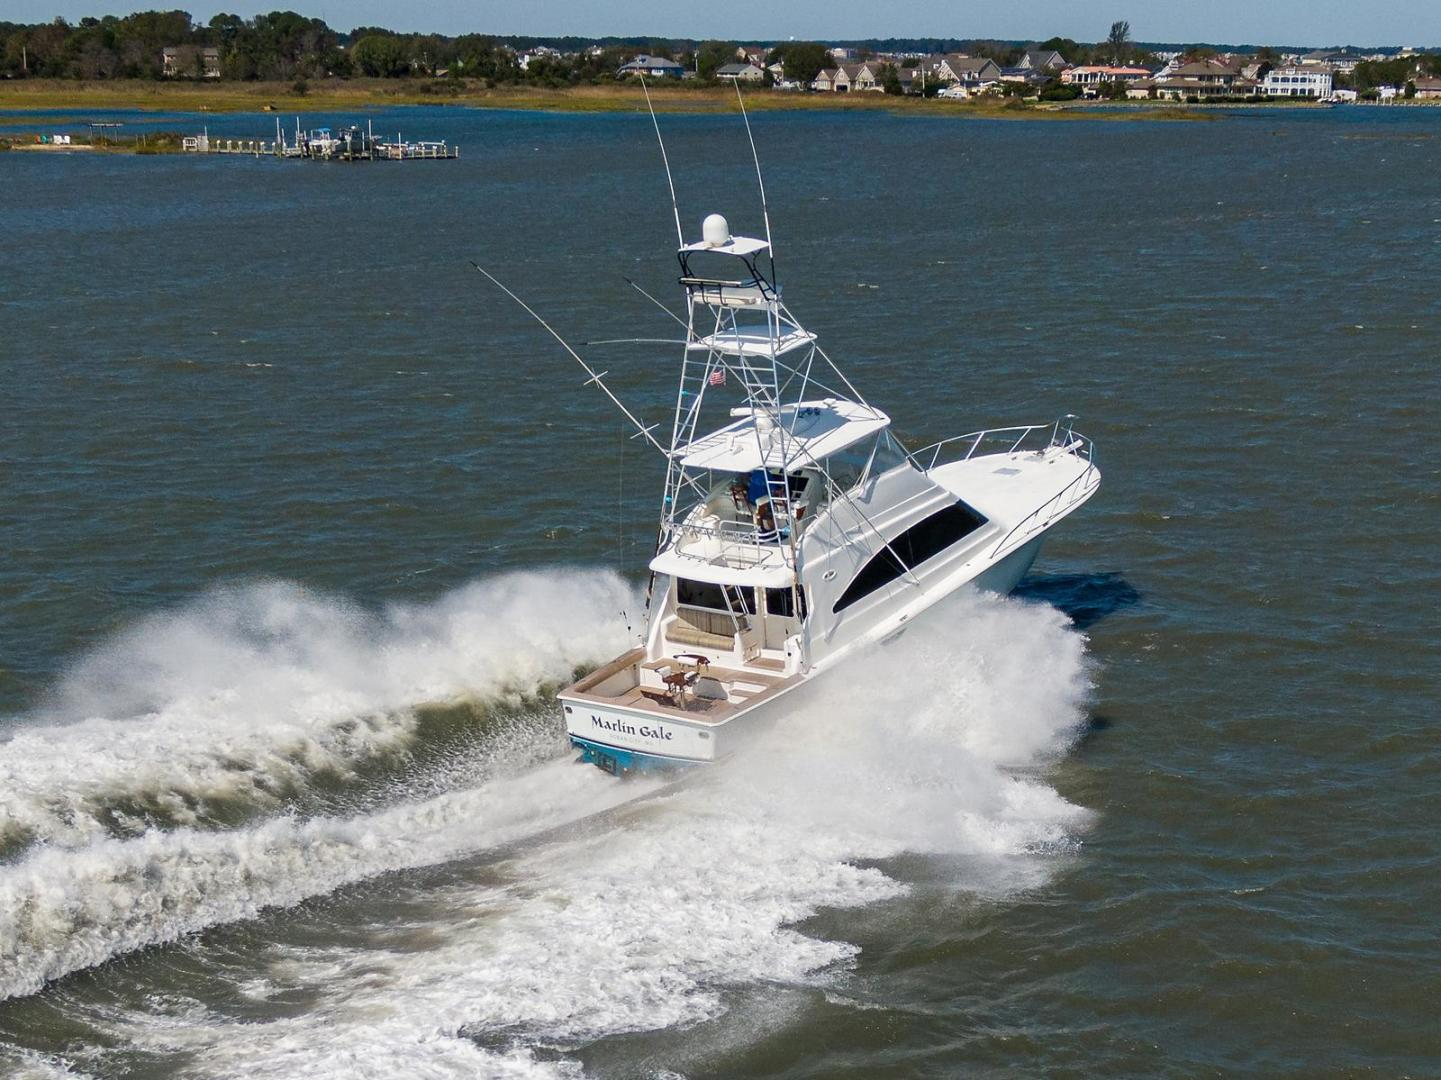 Ocean Yachts 2008-MARLIN GALE Ocean City -Maryland-United States-1514662 | Thumbnail